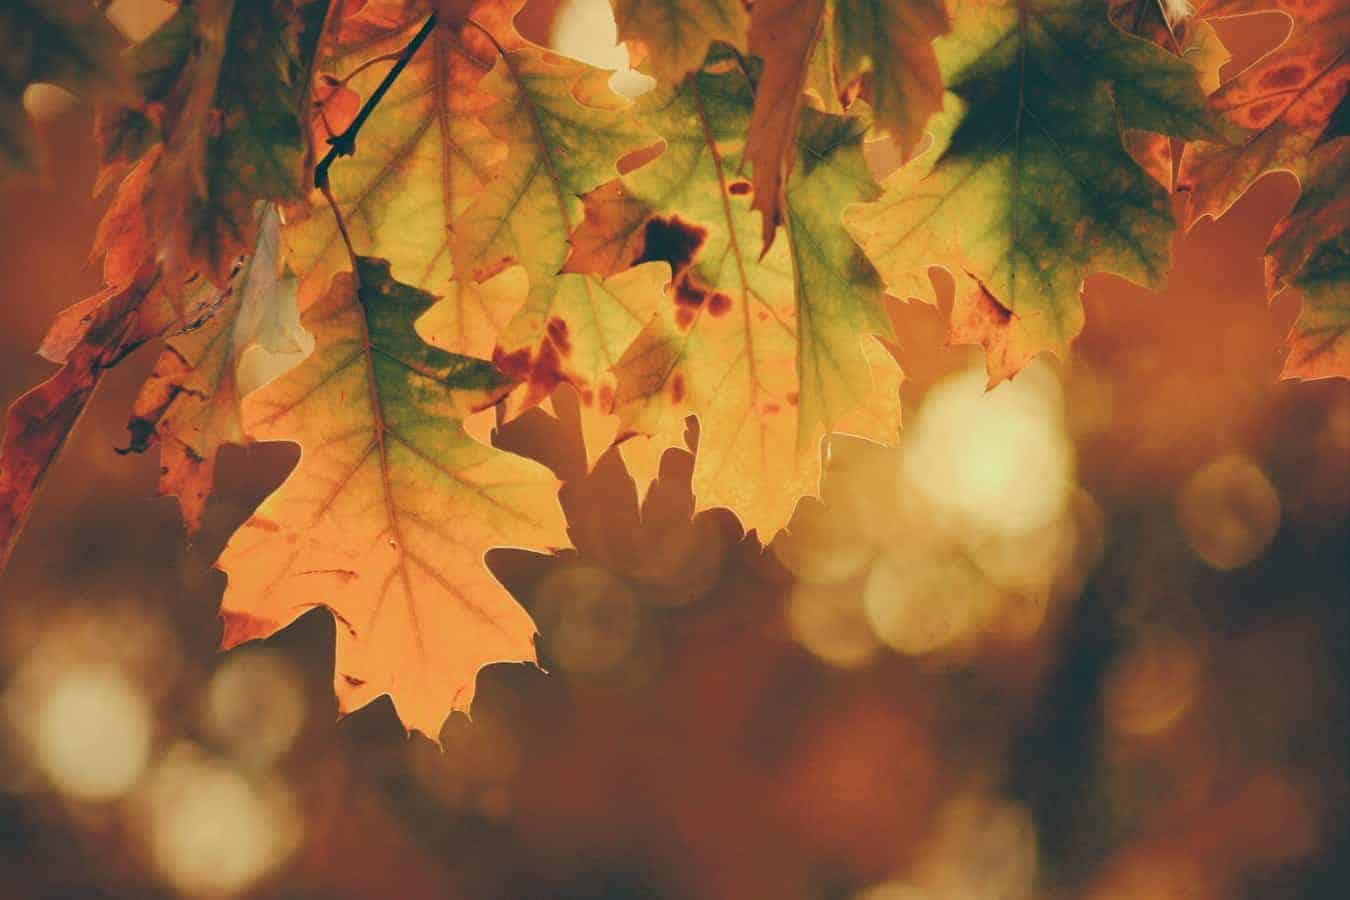 Autumn leaves with blurred background